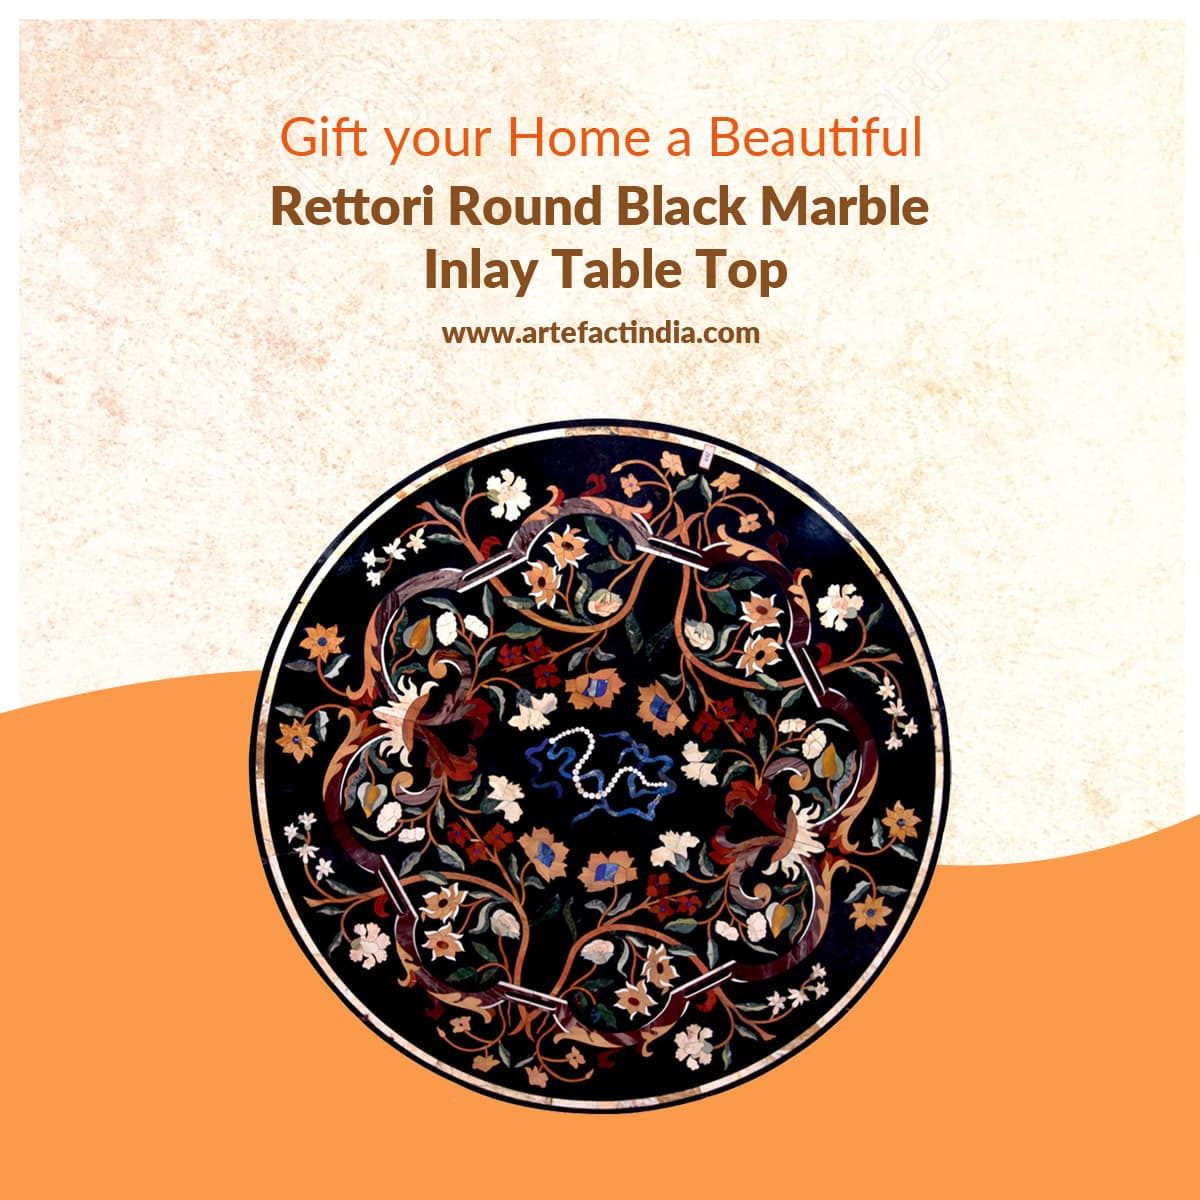 Gift your Home a Beautiful Rettori Round Black Marble Inlay Tabletop